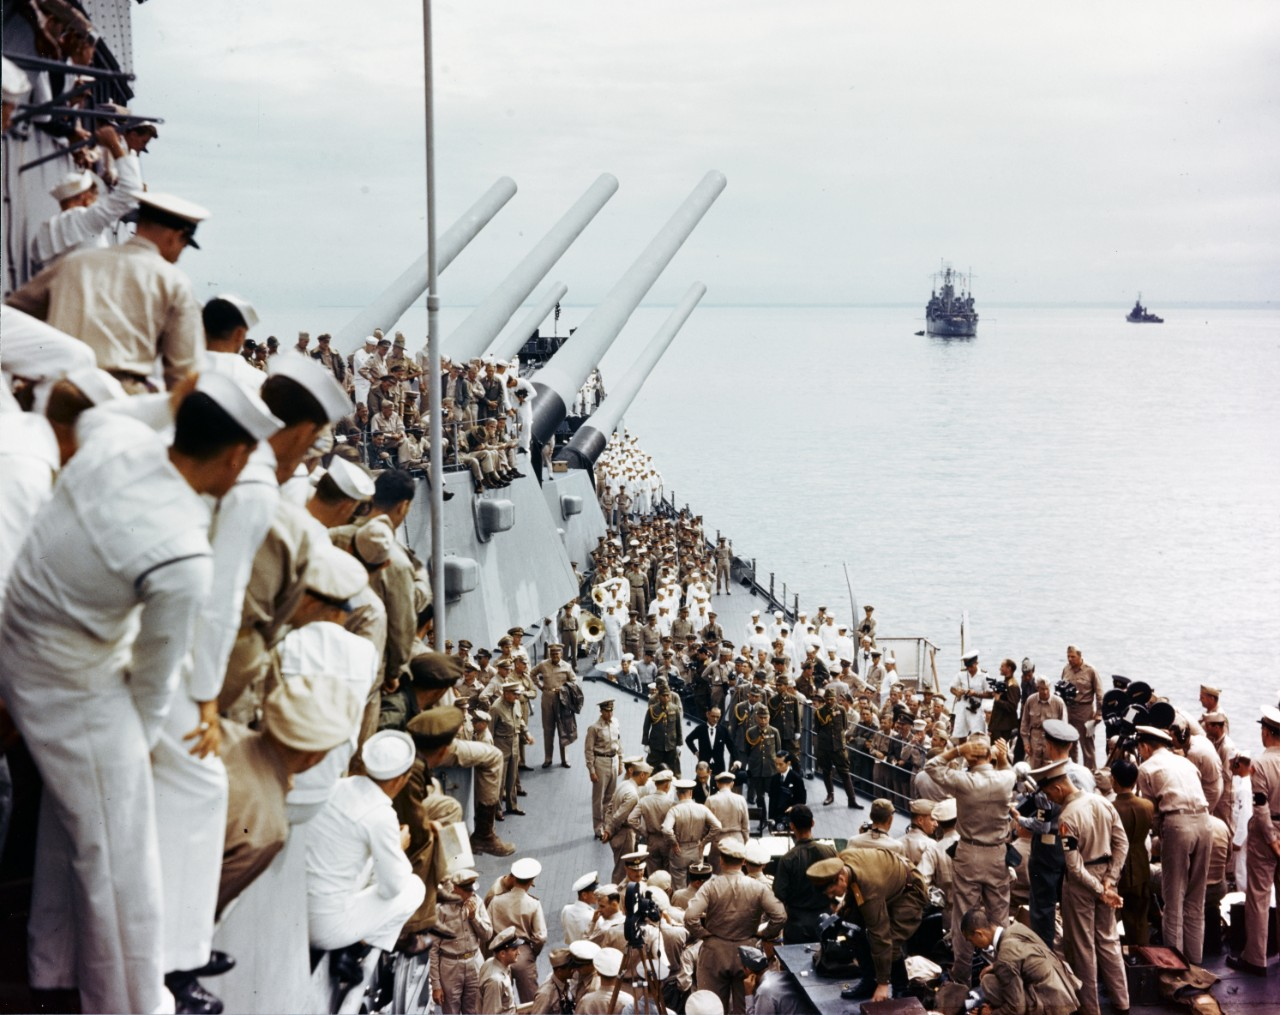 Surrender of Japan, Tokyo Bay, 2 September 1945